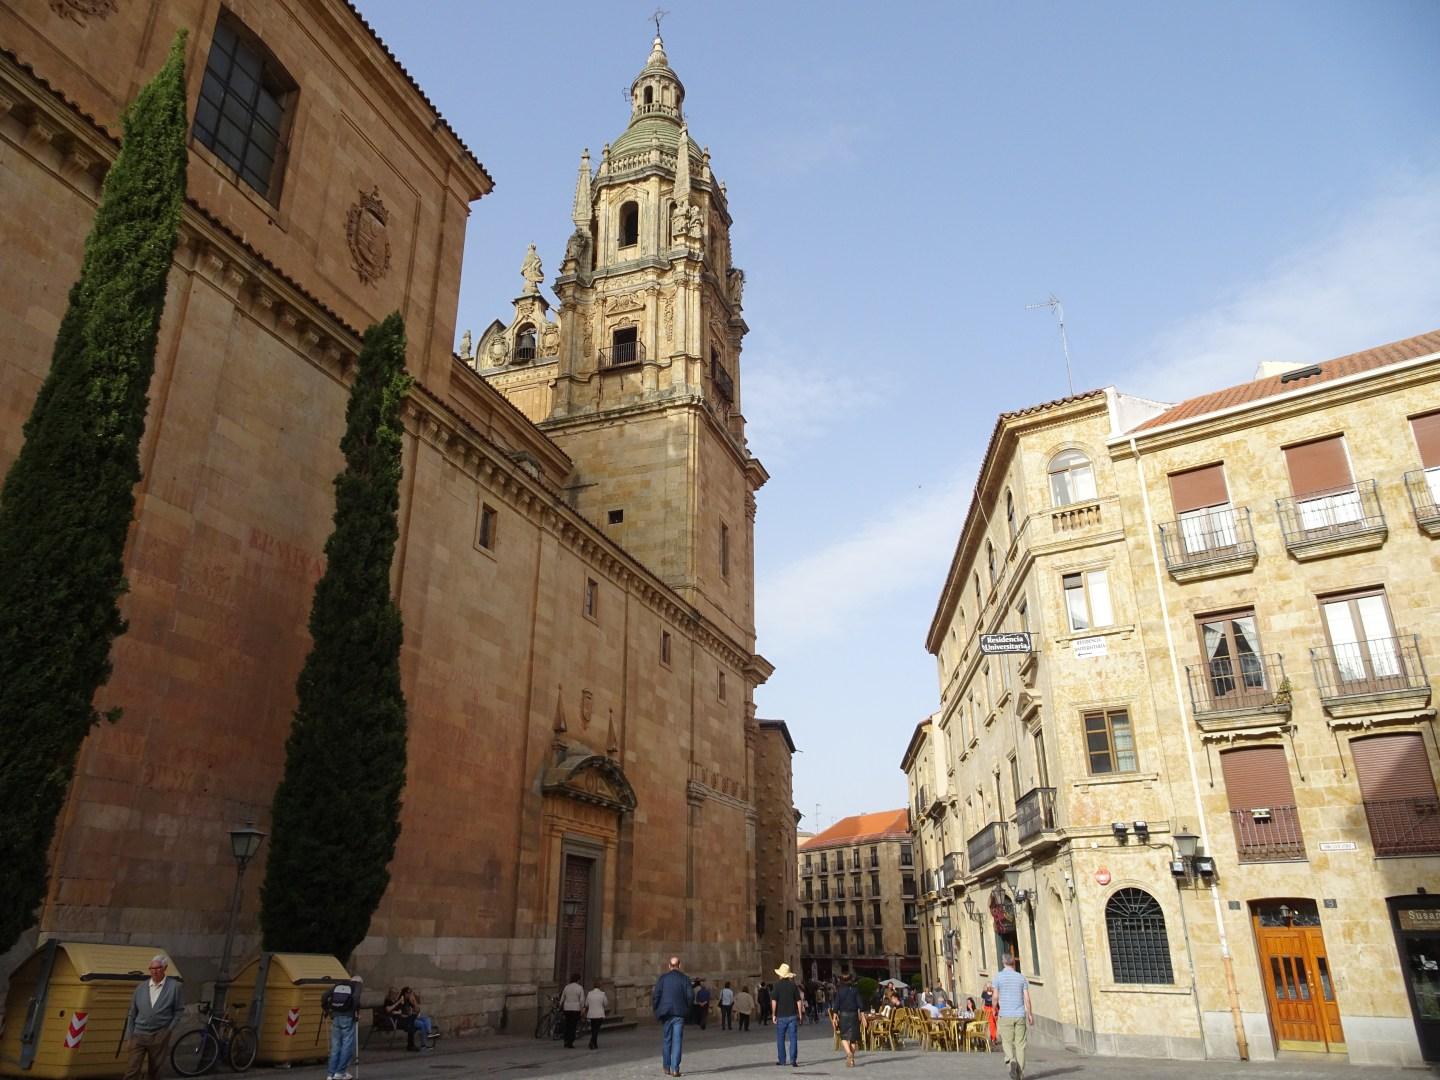 The architecture and history of Salamanca